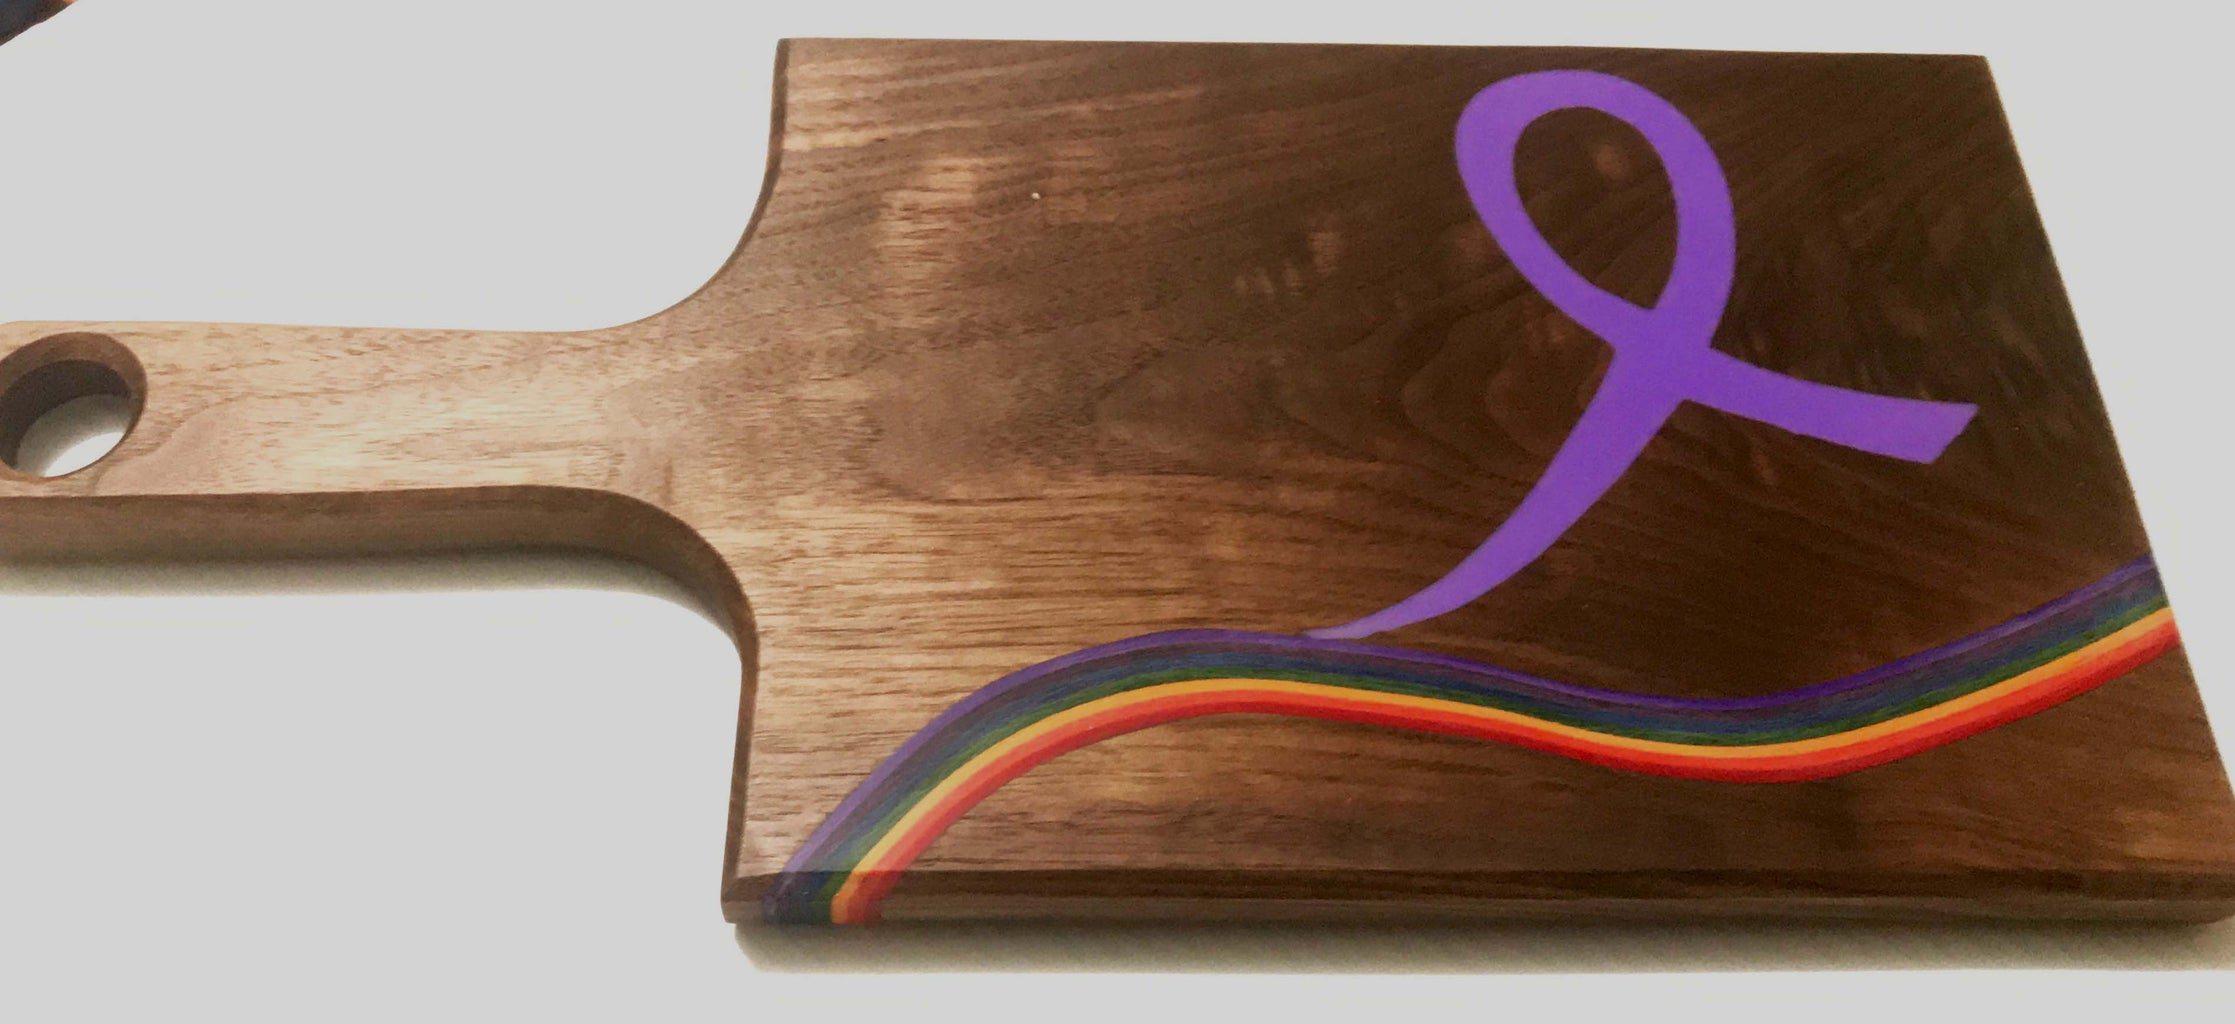 Micarta Like You've Never Seen Before, in a Rainbow Themed Cheese Board.